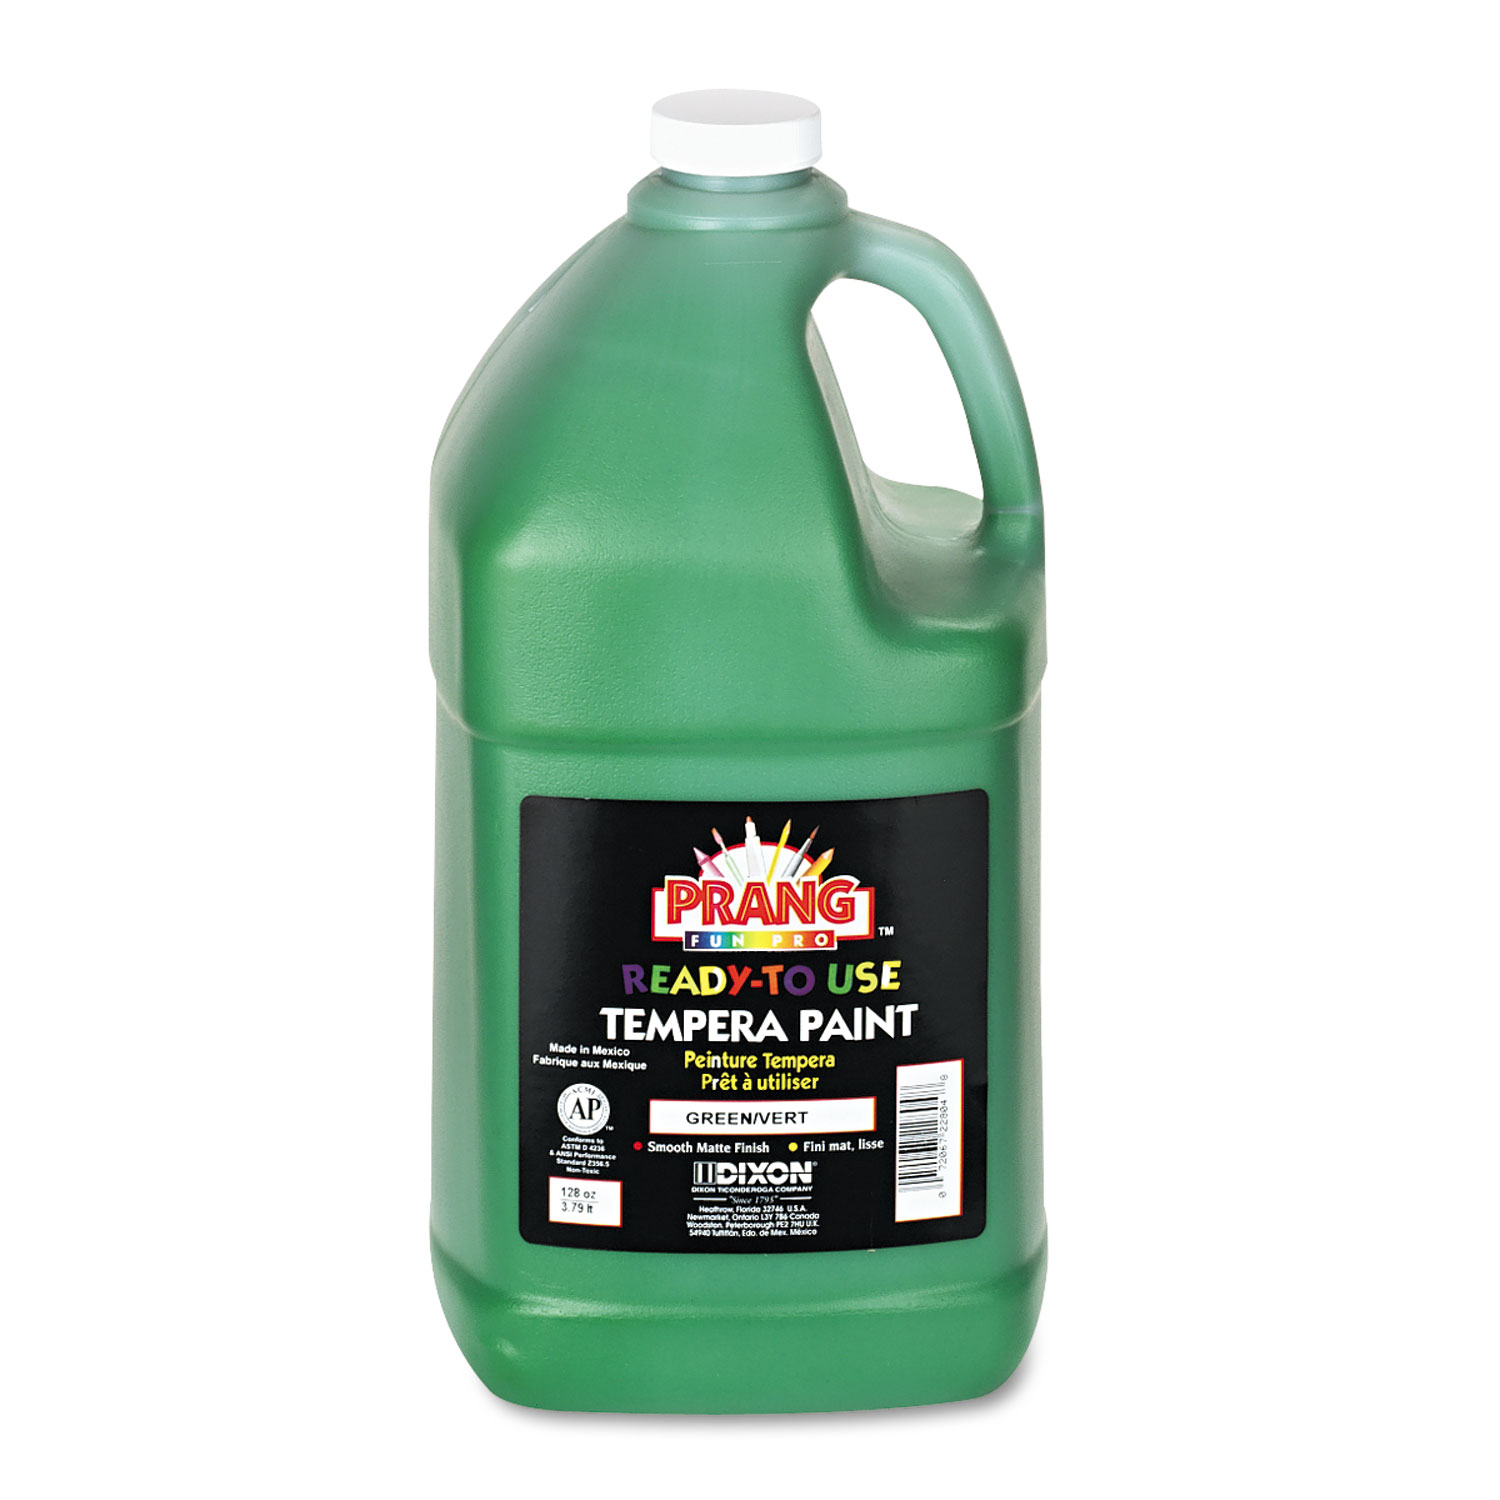 Ready-to-Use Tempera Paint, Green, 1 gal